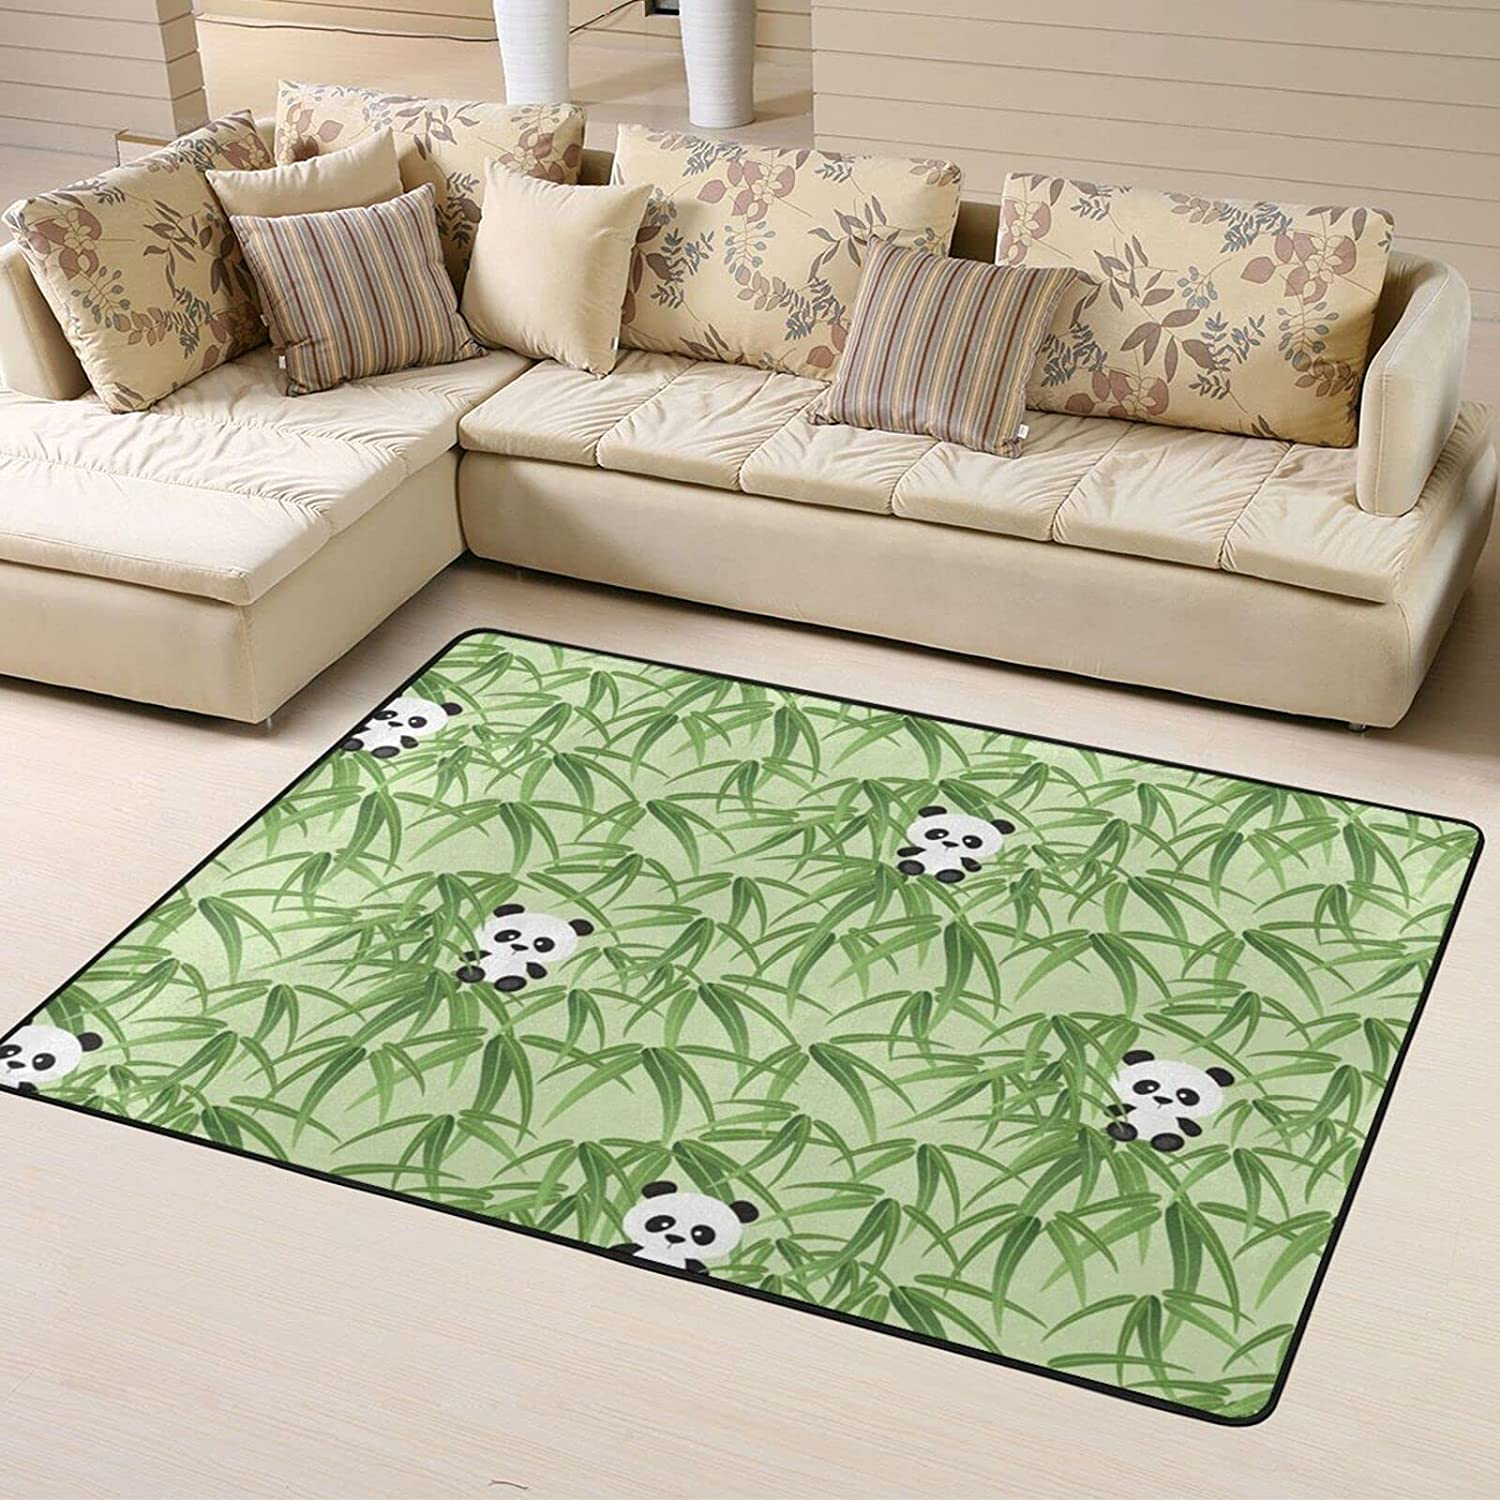 Recommended Cute Panda Bamboo Green Soft Area Bedroom Room Rugs for Living Safety and trust